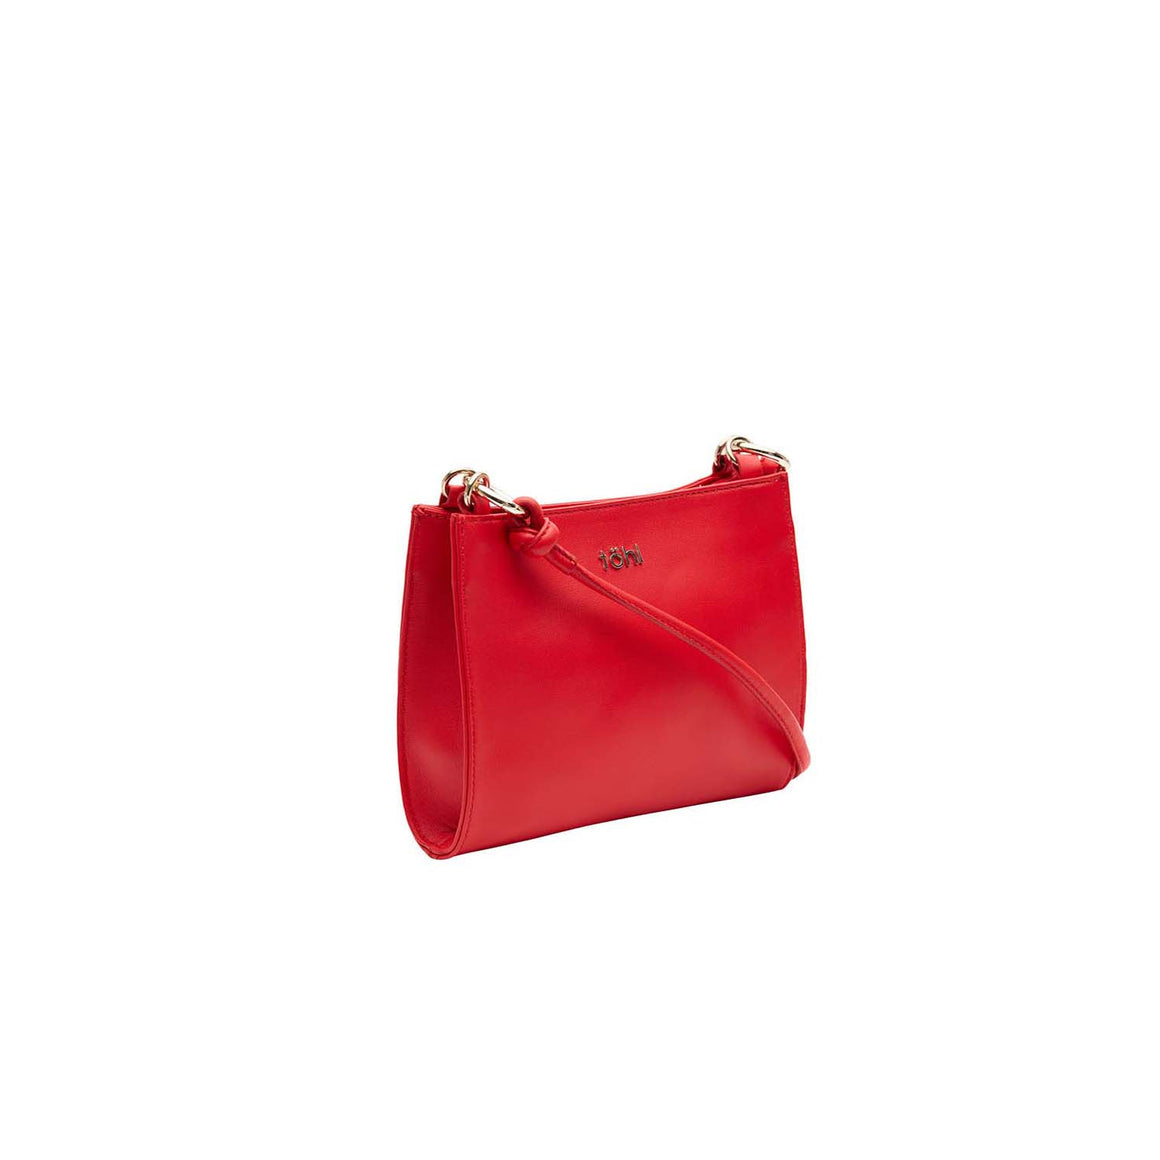 SG 0028 - TOHL BAYLIS WOMEN'S SLING & CROSSBODY BAG - SPICE RED